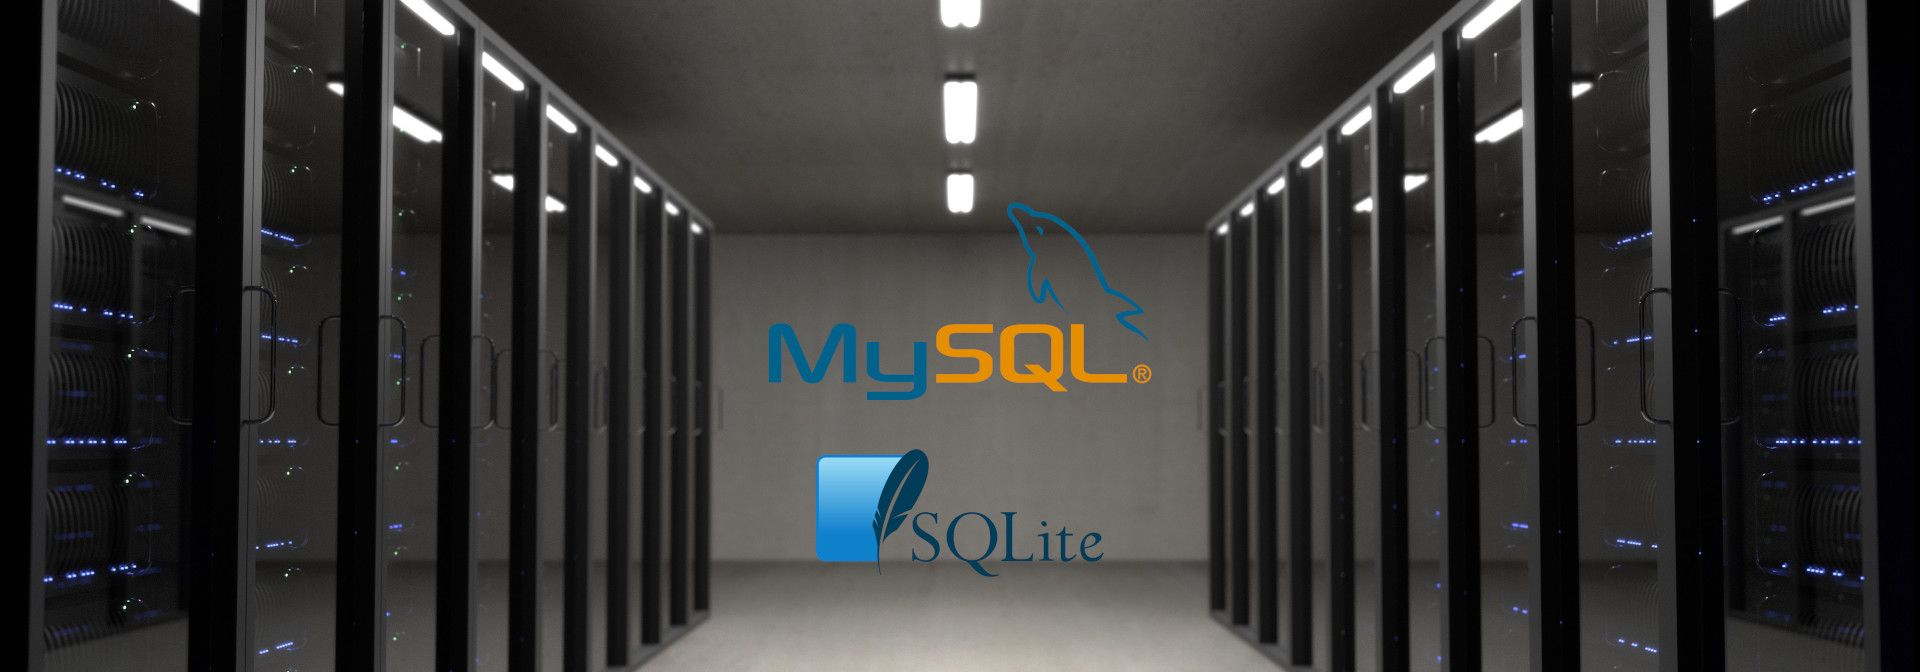 Change Ghost database from default MySQL to SQLite